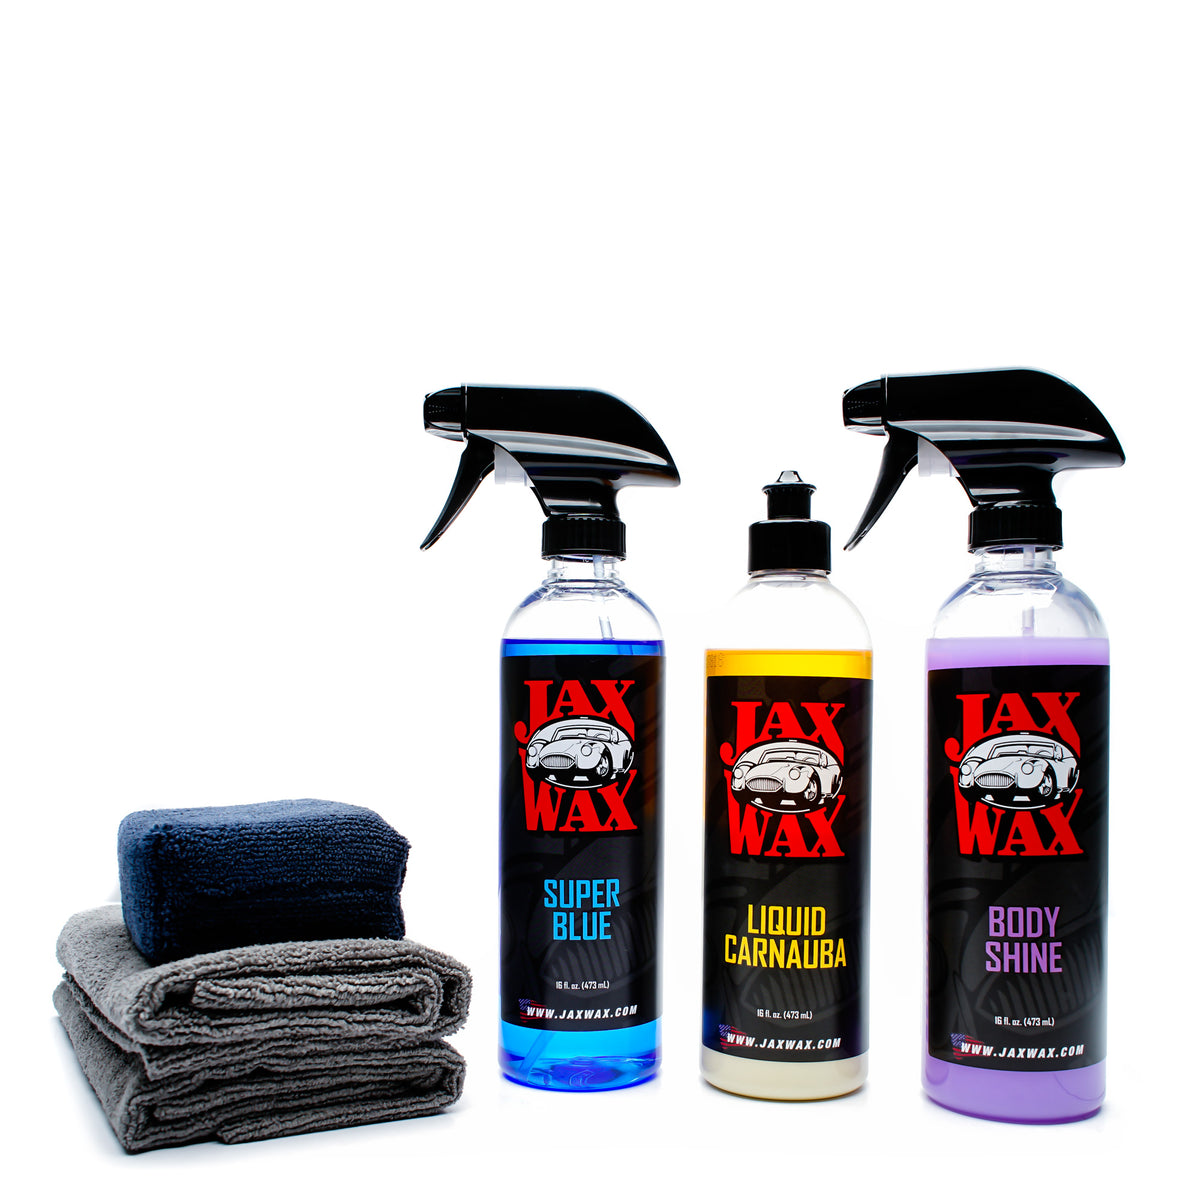 Jax Wax Exterior Detail Car Care Kit 16 Oz